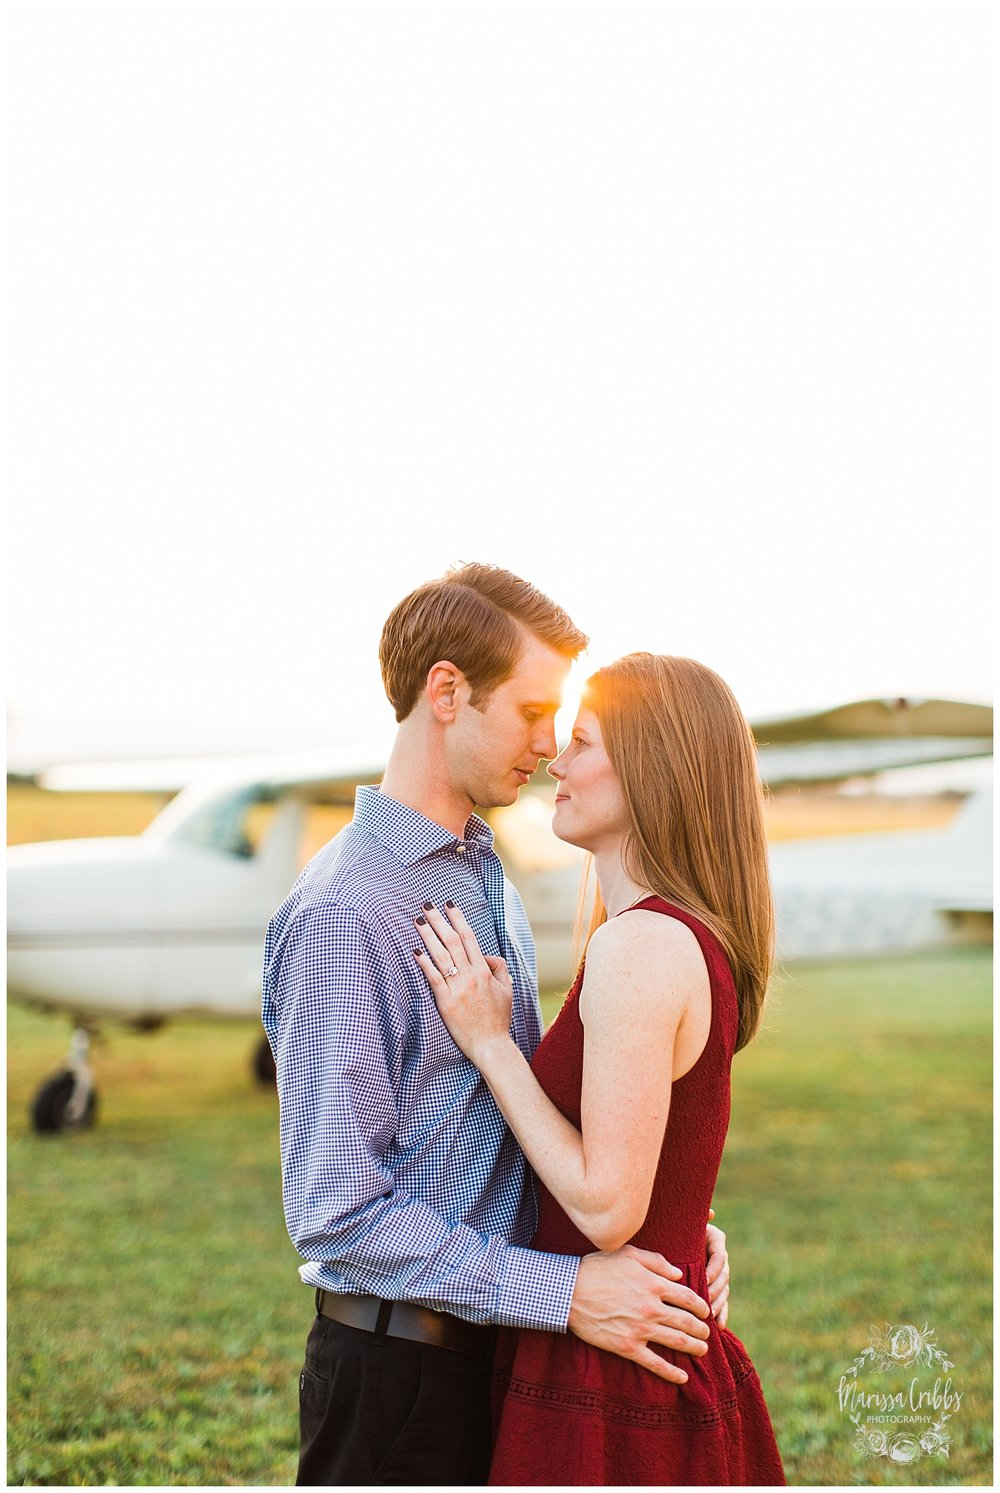 KELLY & BEN ENGAGED | MARISSA CRIBBS PHOTOGRAPHY_3147.jpg